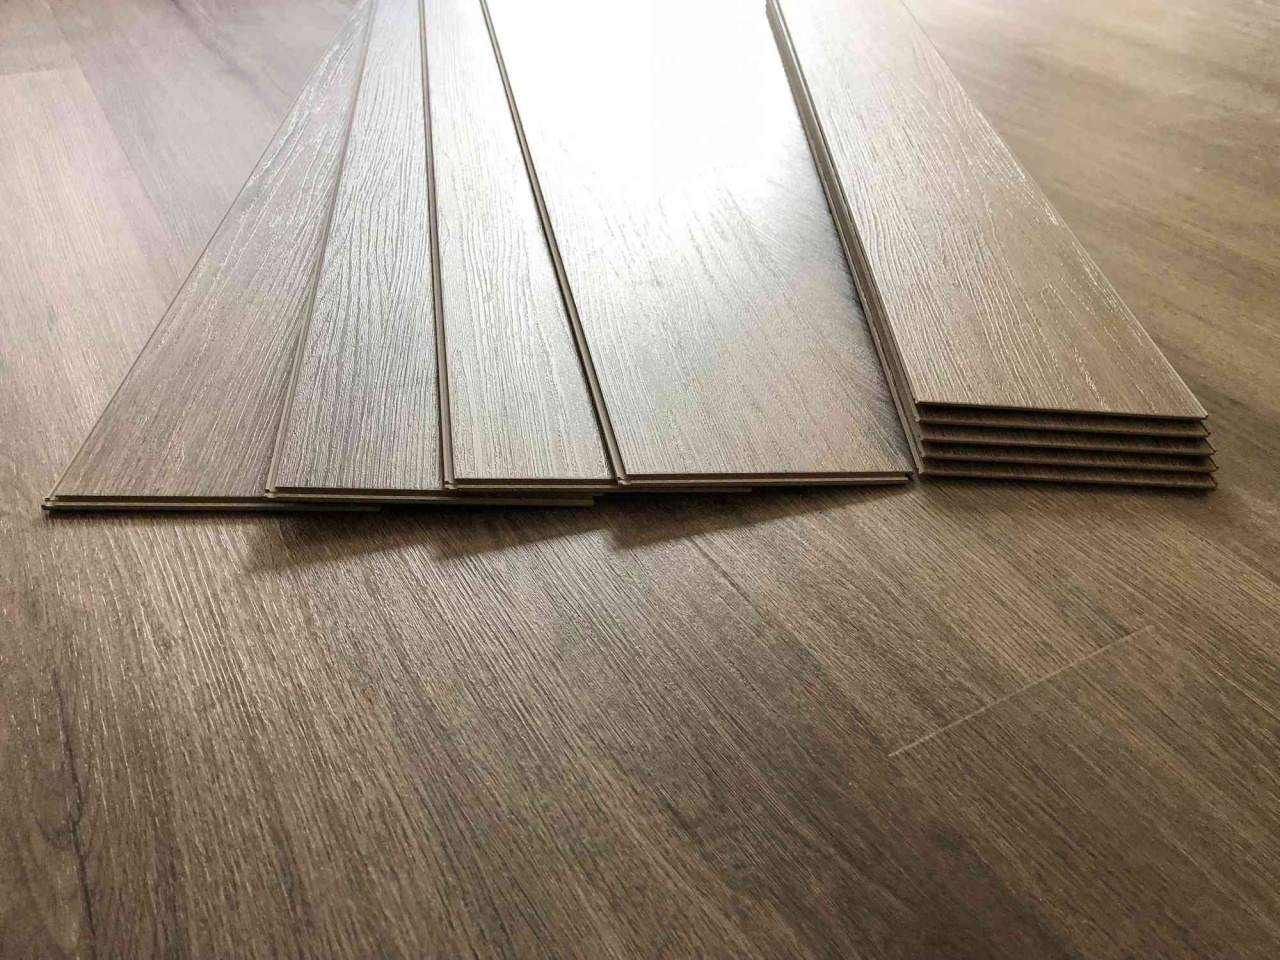 Cleaning Vinyl Floors With Grooves How To Install Plank